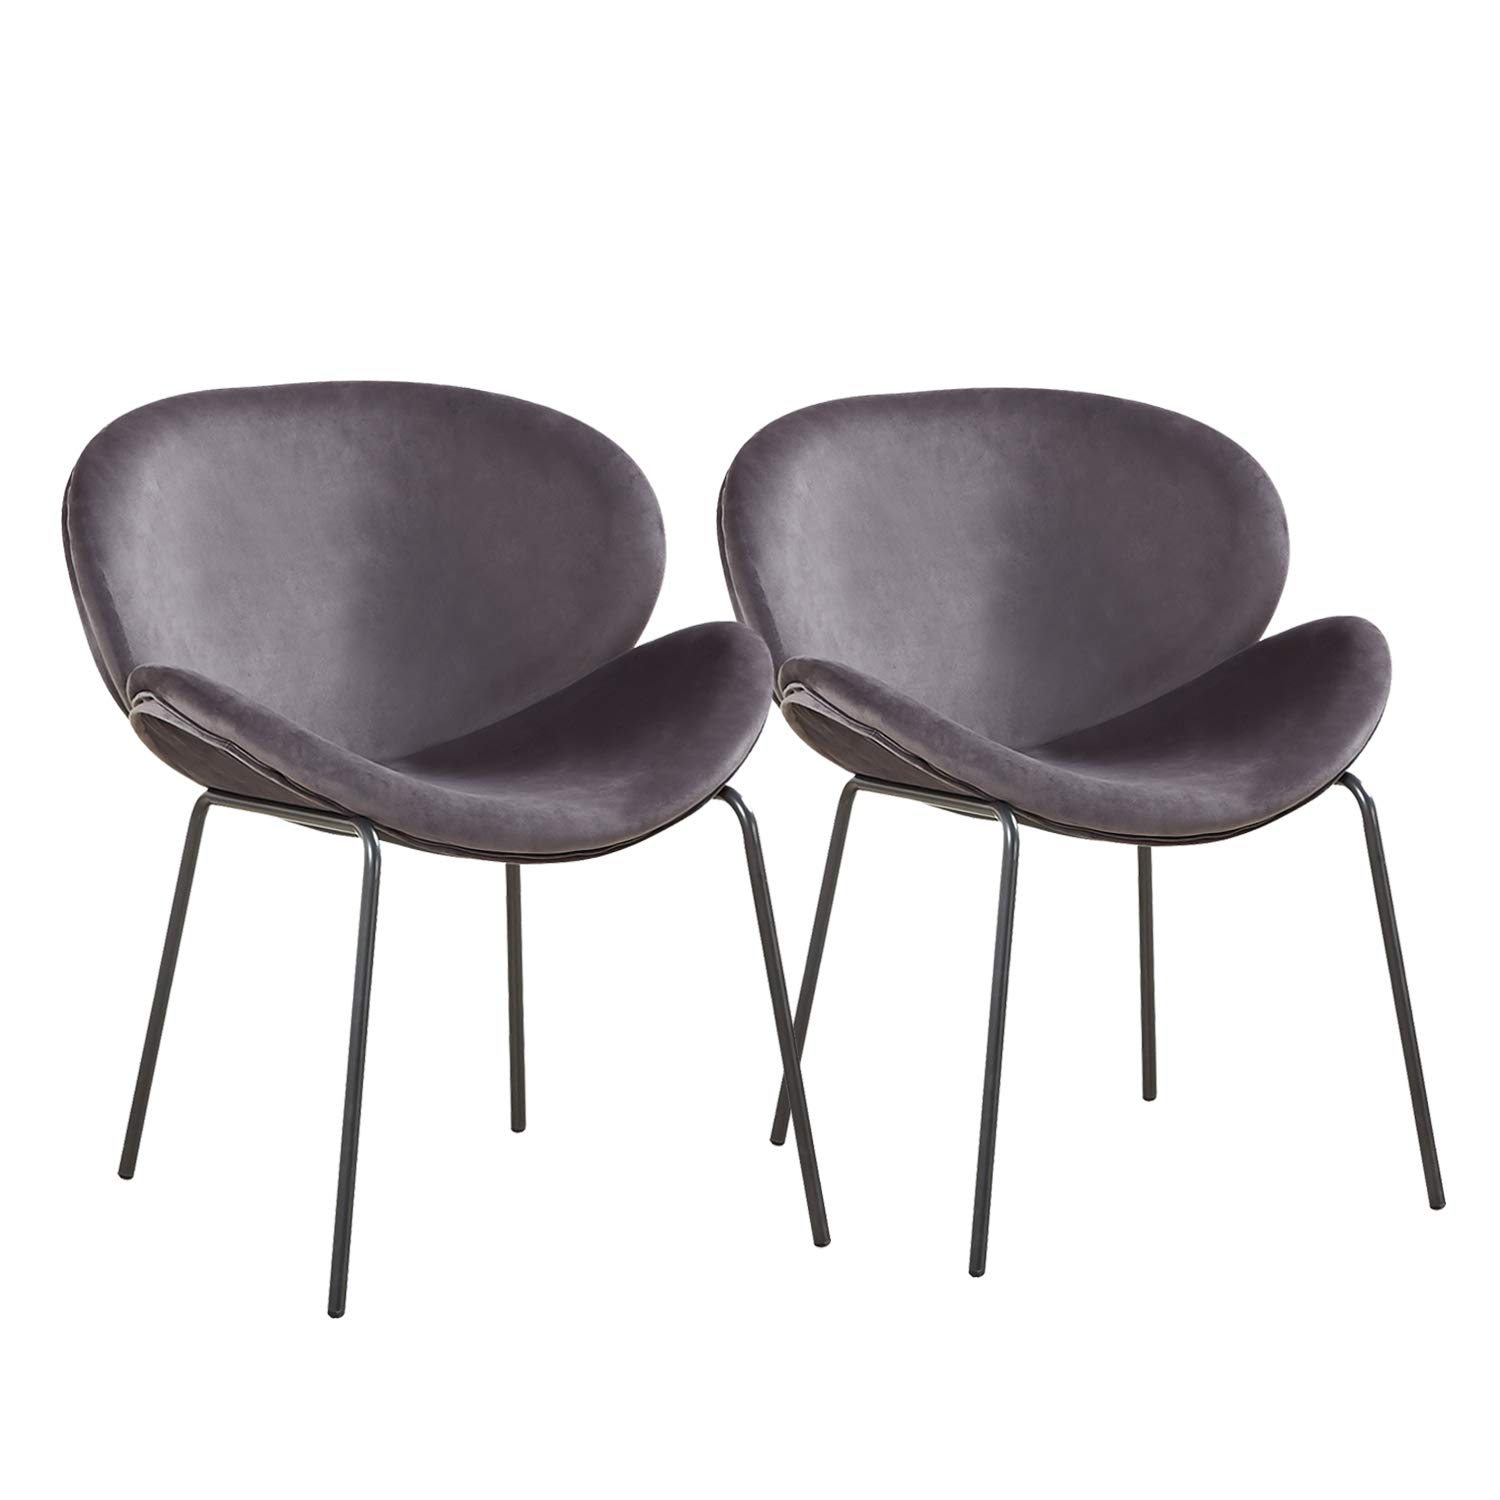 GreenForest Velvet Accent Chairs Modern Large Shell Chairs for Living Room Leisure Chair for Bedroom Set of 2, Grey by GreenForest